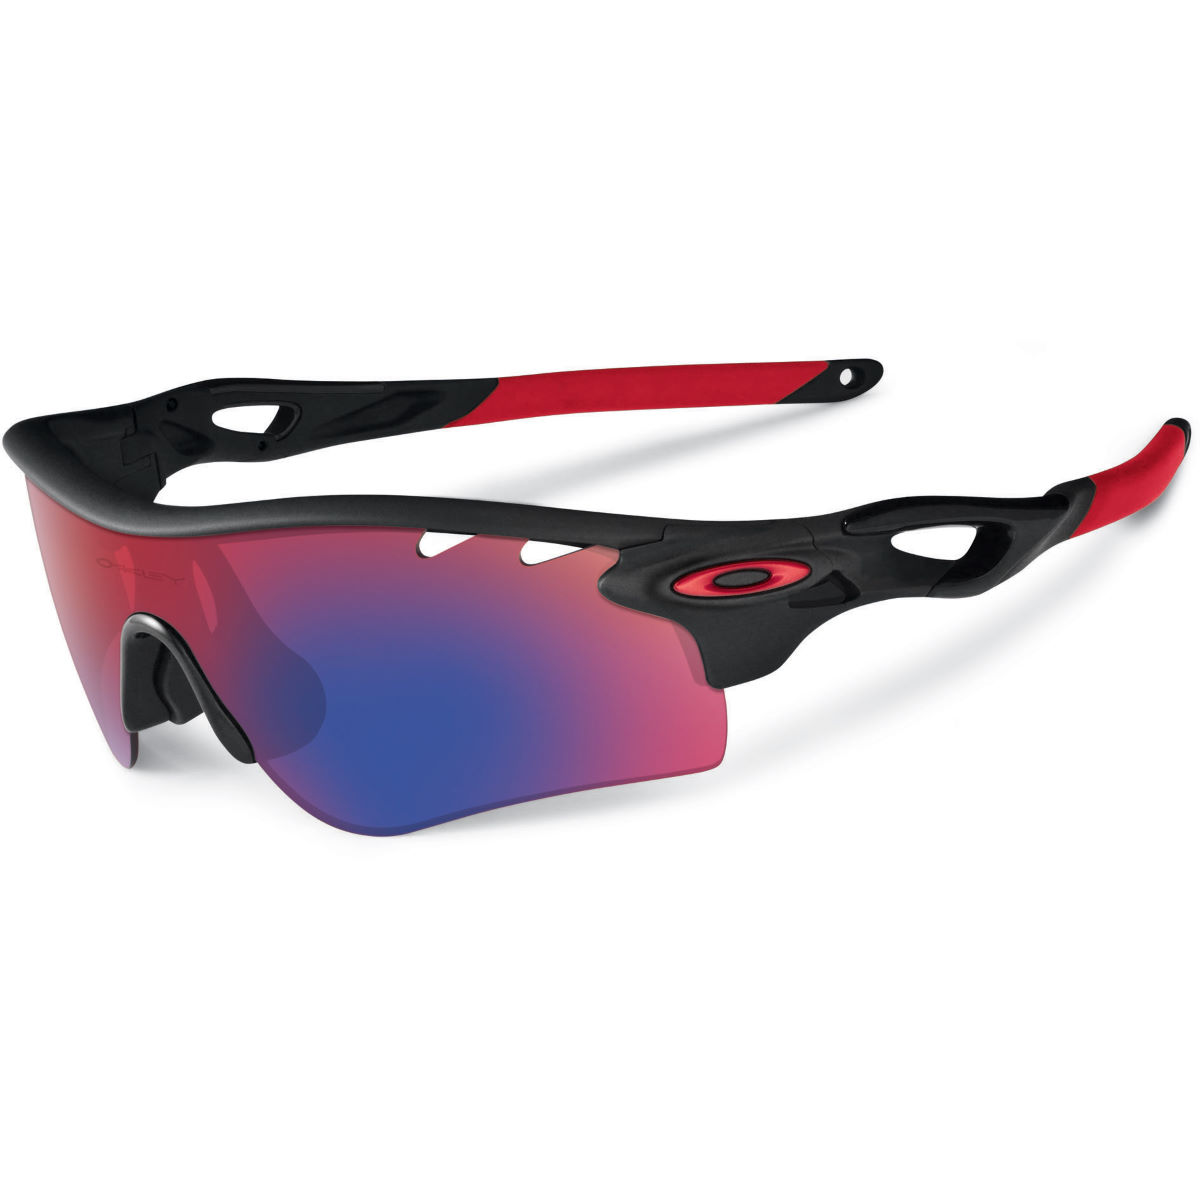 525232d4e4a Cheap Authentic Oakley Radar Sunglasses « Heritage Malta